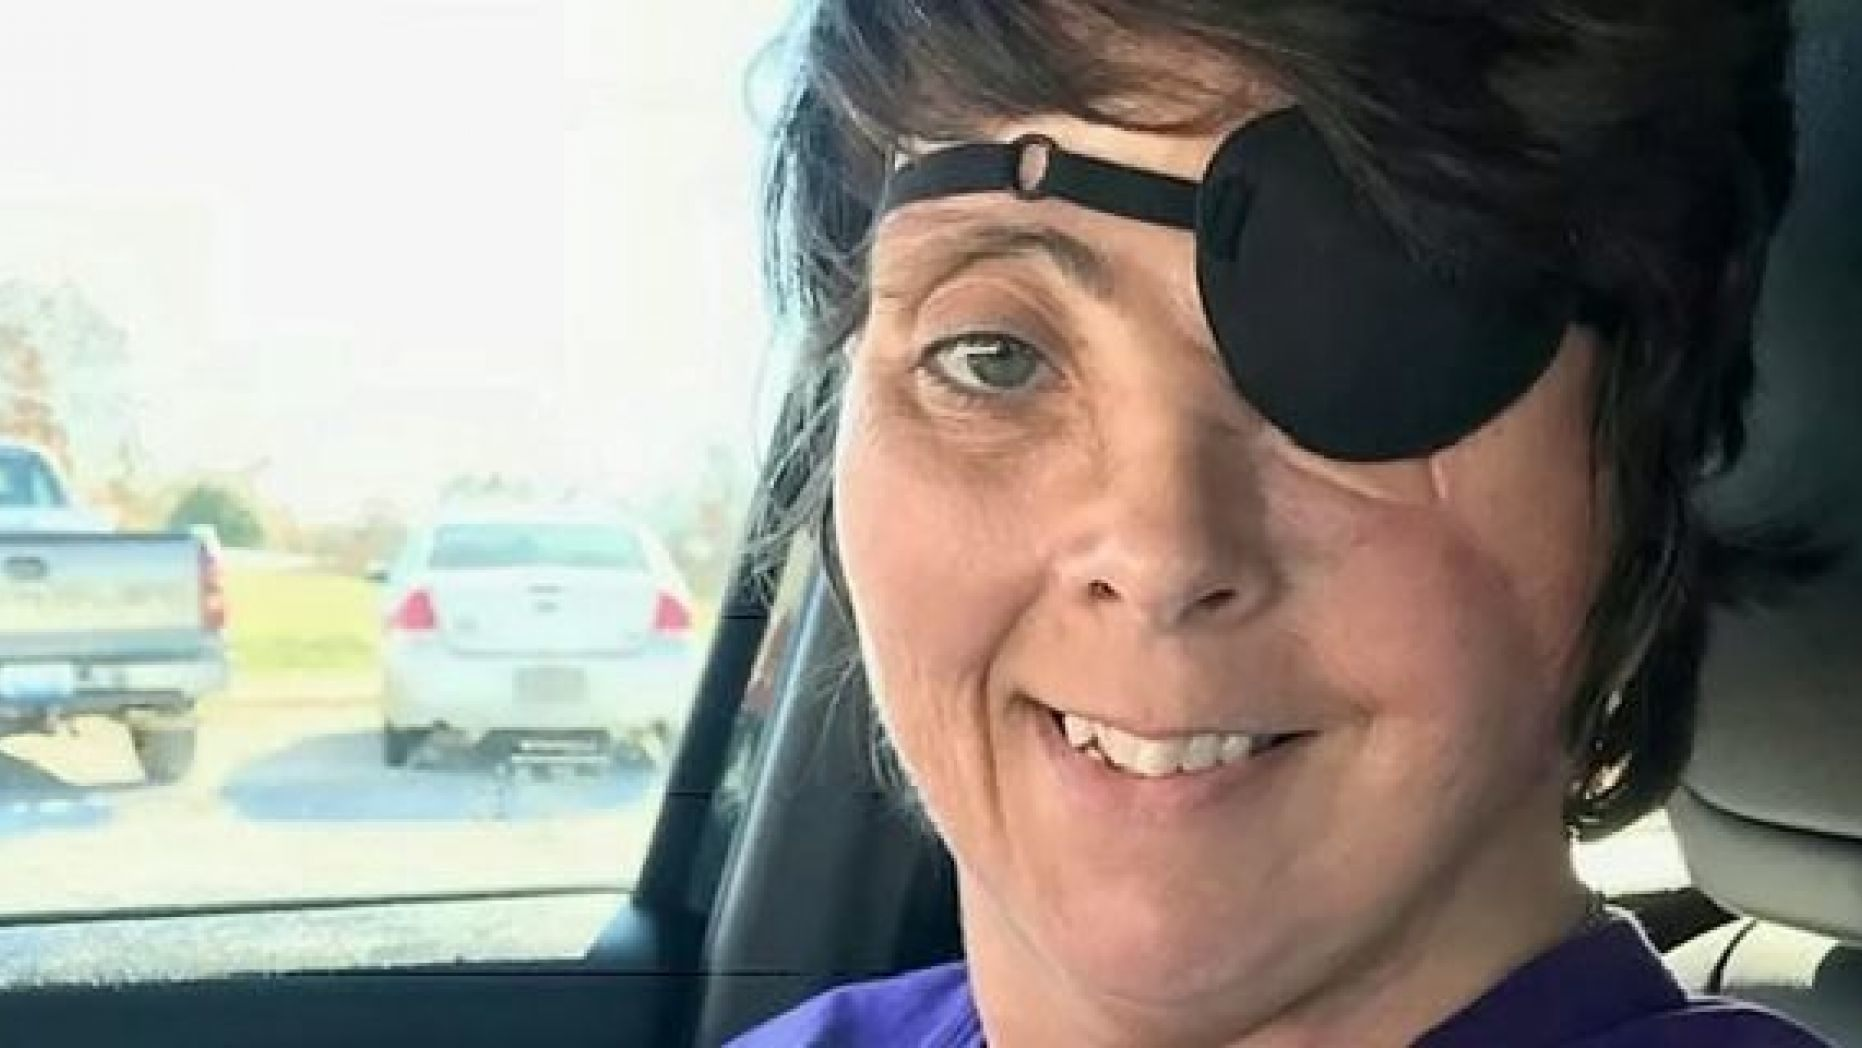 Kristie Young is now advocating for firework safety after suffering the loss of her eye and a brain hemorrhage.